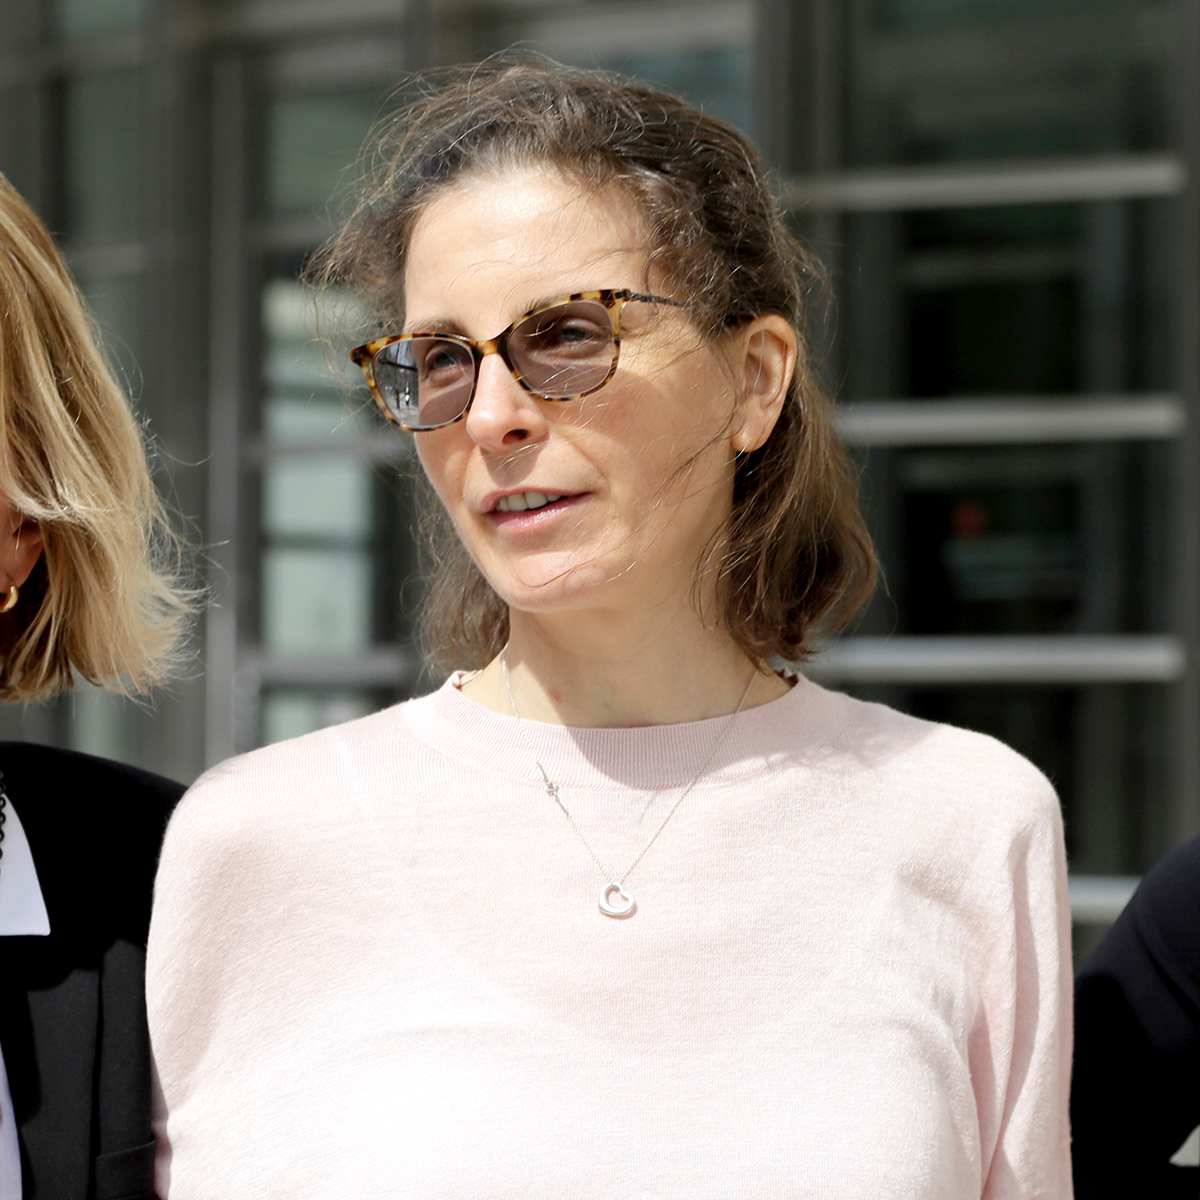 Clare Bronfman Sentenced for Role in NXIVM Scandal